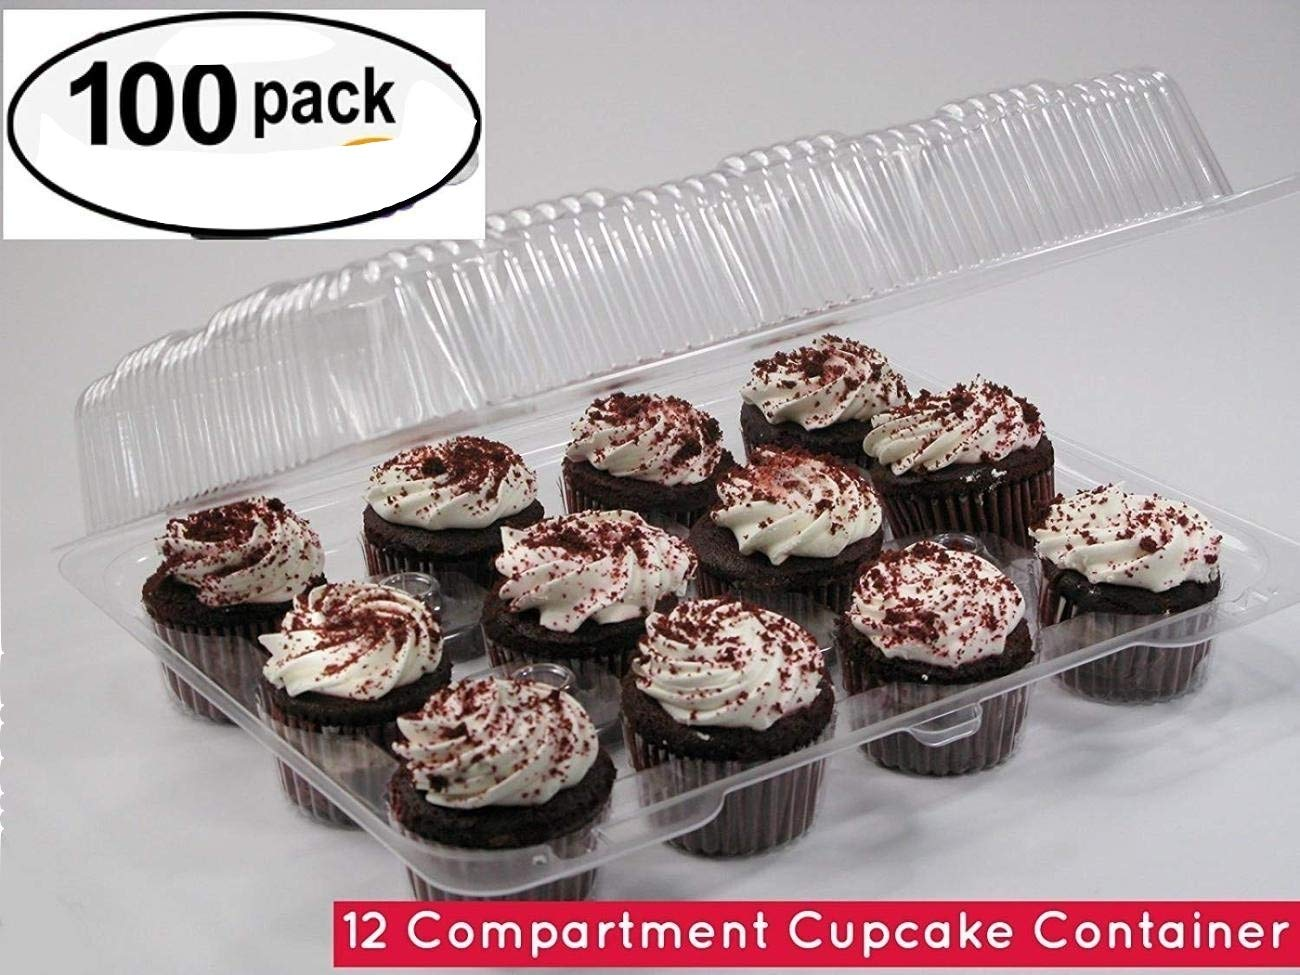 12-Compartment Cupcake Container with Hinged Lid, Clear (100, 12- Compartment)